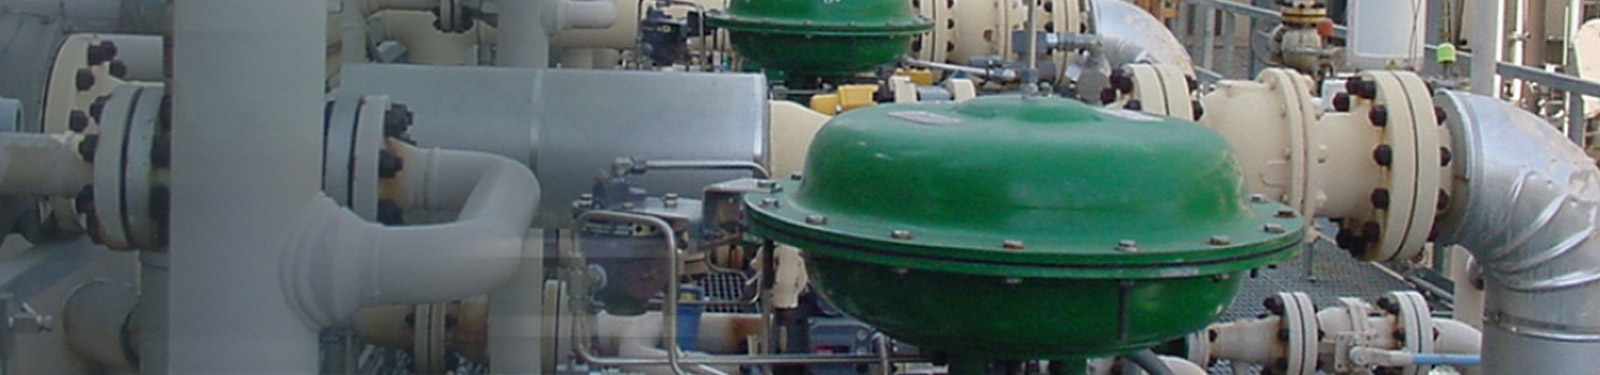 Field Services – Valves